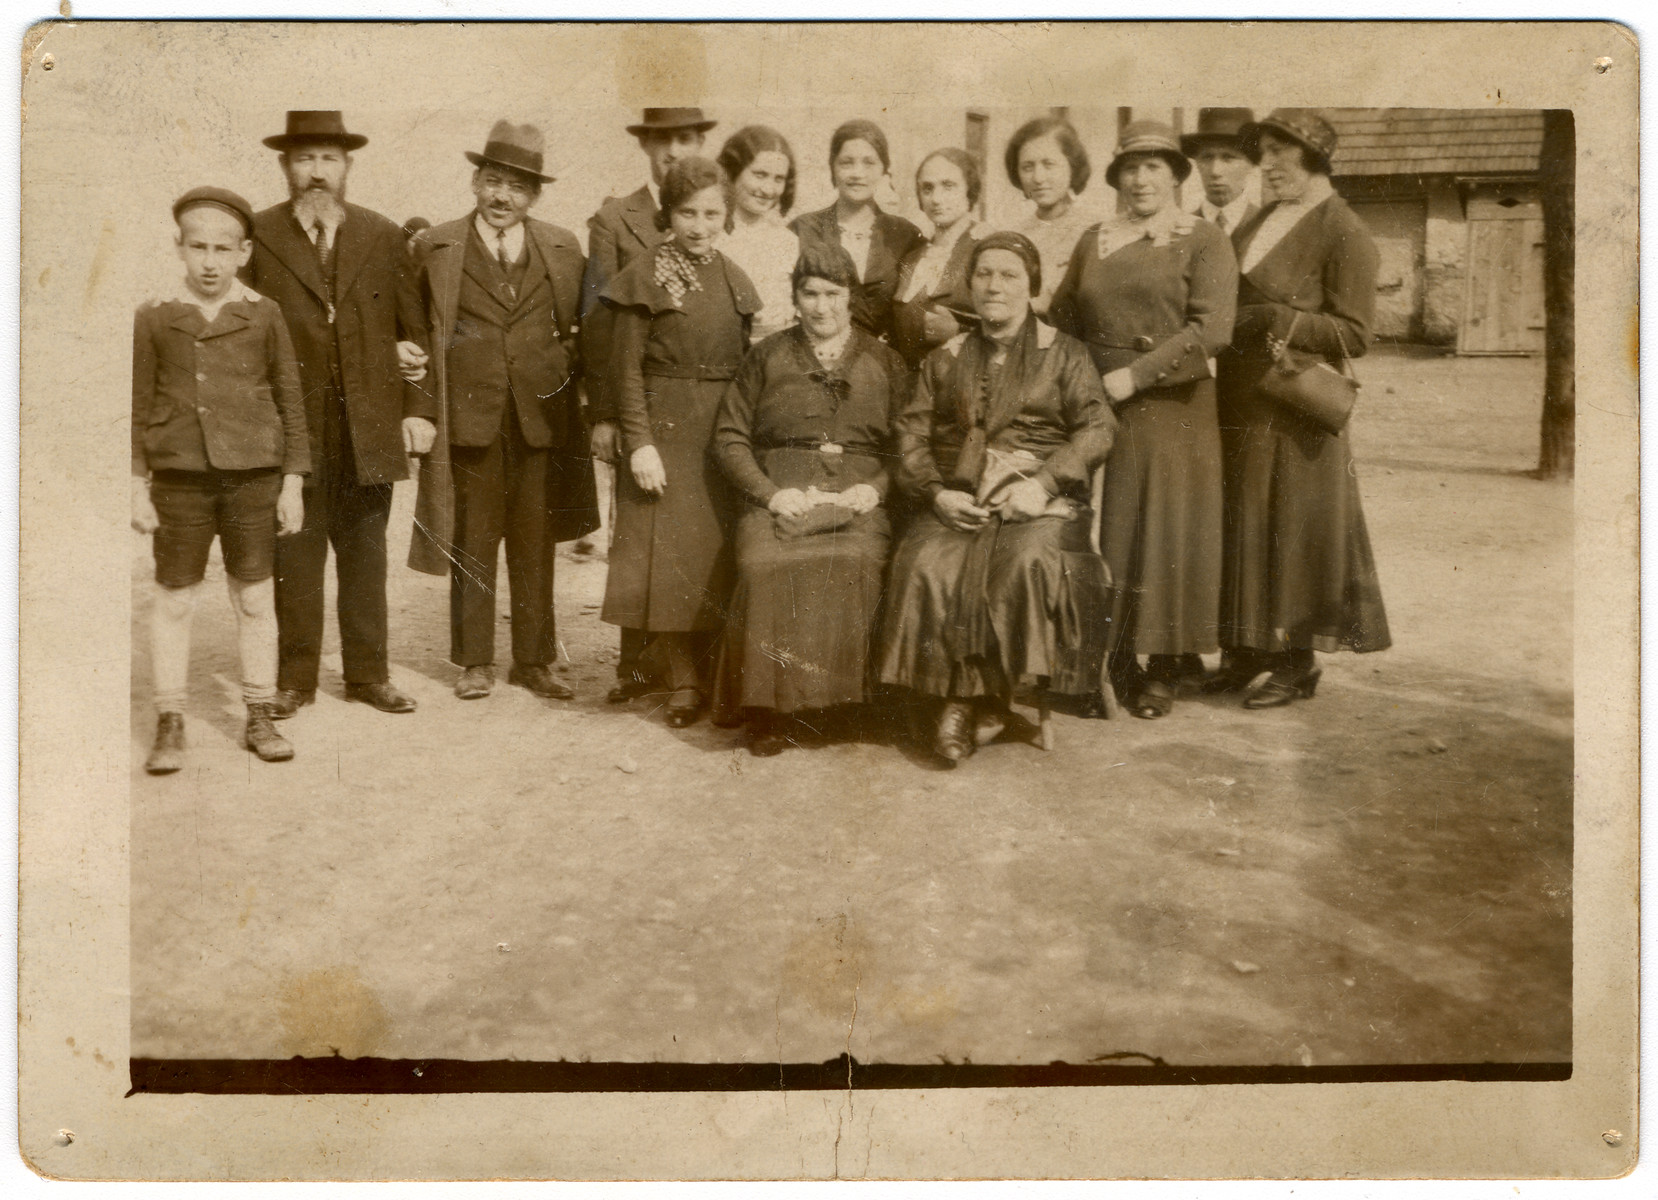 A large Orthodox family gathers together on the Jewish holiday, Lag Ba'Omer.  Seated are: Sharika Frieder (wife of Pinchas Frieder), Mali Grunfeld (Malvina's mother).  Standing are: Walter Jungleib (son of Arye Jungleib and Malvin Frieder, daughter of Pinchas Frieder), Pinchas (Philip) Frieder (cantor and shochet in Prievidze, CZ), Arye Jungleib, (boy in back) cousin to Rabbi Lebovich's daughters, (girl in front) girlfriend of Malvina's from Galanta, daughter of Rabbi Lebovich from Bratislava, ?  Fruchter (sister-in-law to Malvina's sister, Zali), daughter of Rabbi Lebovich from Bratislava, Helen Weinstein (Malvina's sister), Avraham (Rumi) Grunfeld (Malvina's brother, Lenke Grunfeld (Malvina's sister)